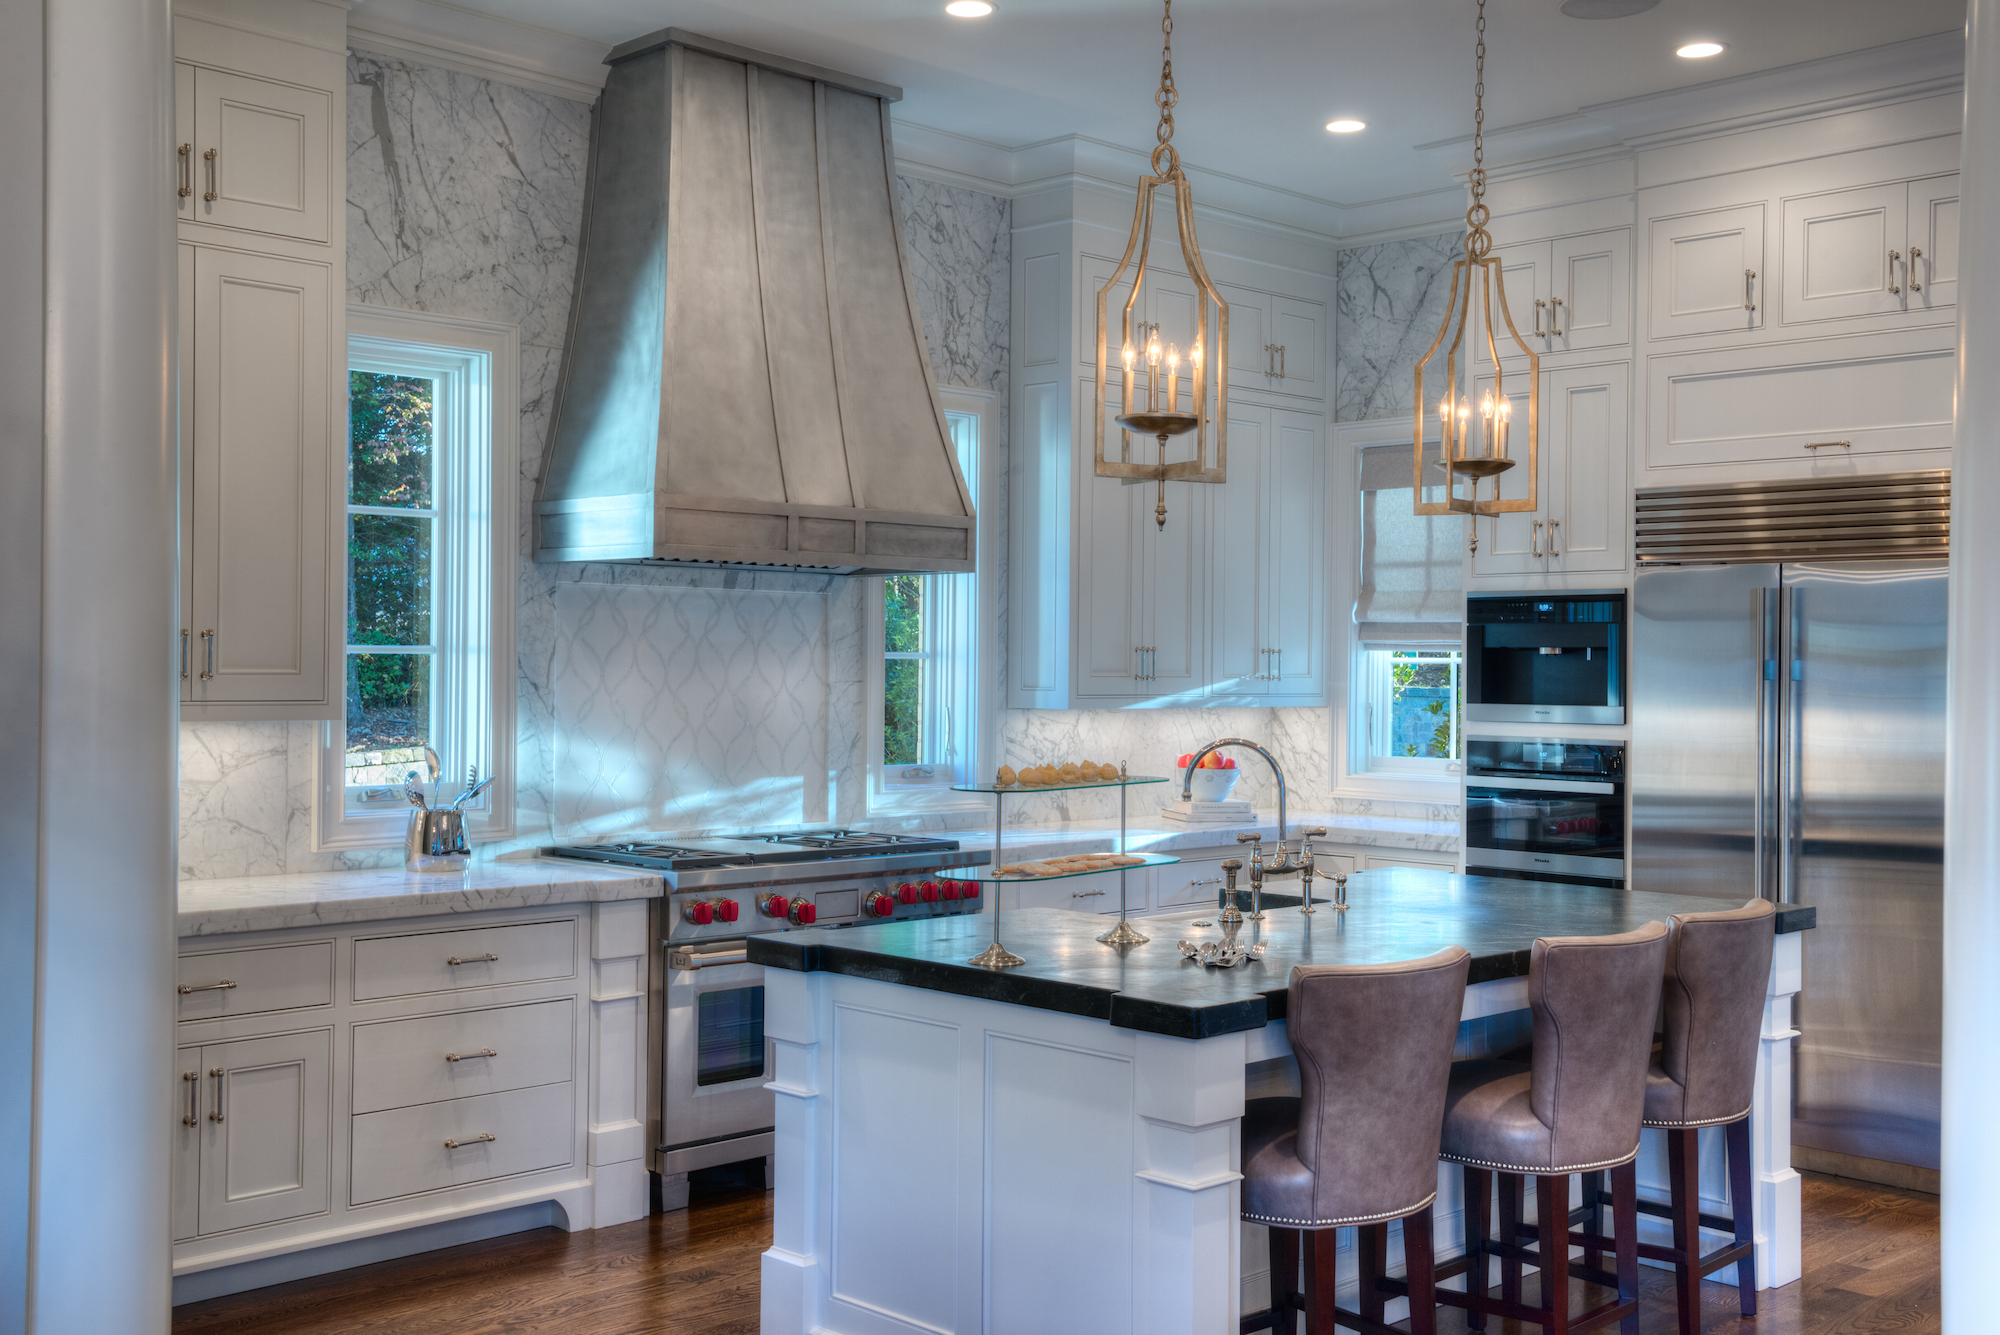 Product Spotlight: Range Hoods | The Heirloom Companies